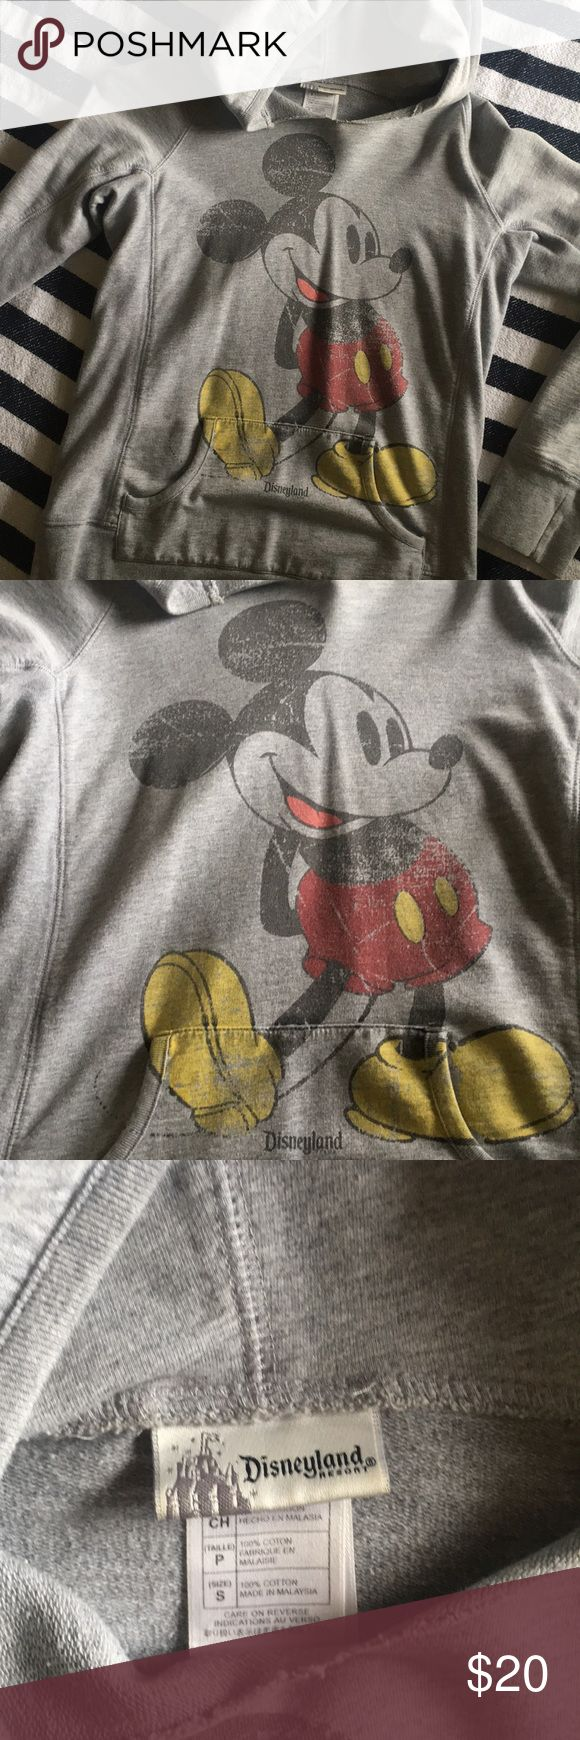 Pullover Mickey Mouse hoodie Small Mickey Mouse pullover - from Disneyland 100% cotton  Fits true to size Great condition Disney Tops Sweatshirts & Hoodies